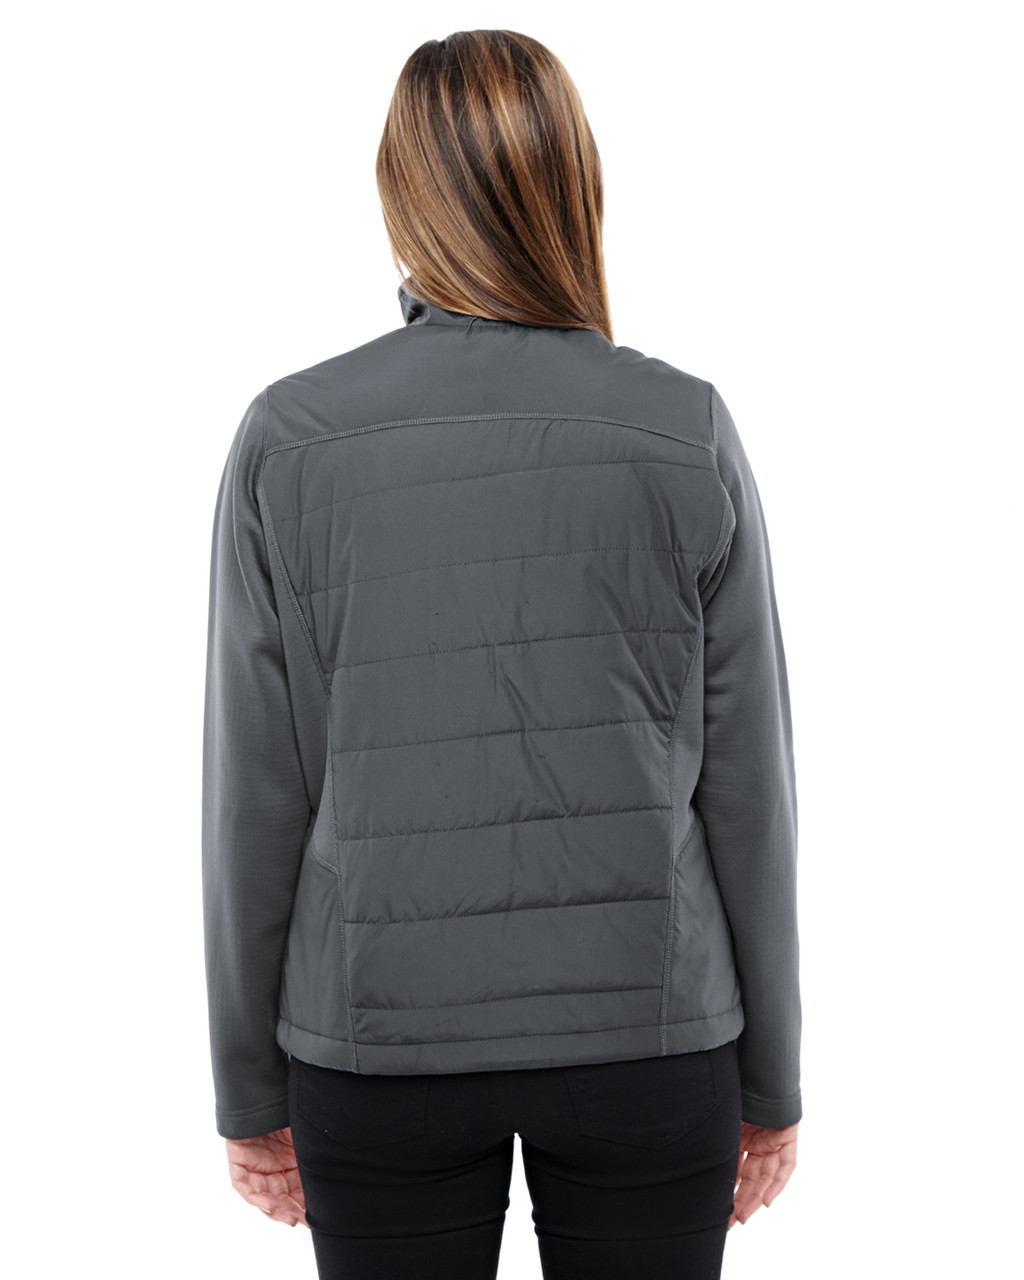 Carbon/Carbon - back 78809 North End Sport Red Quantum Interactive Hybrid Insulated Jacket